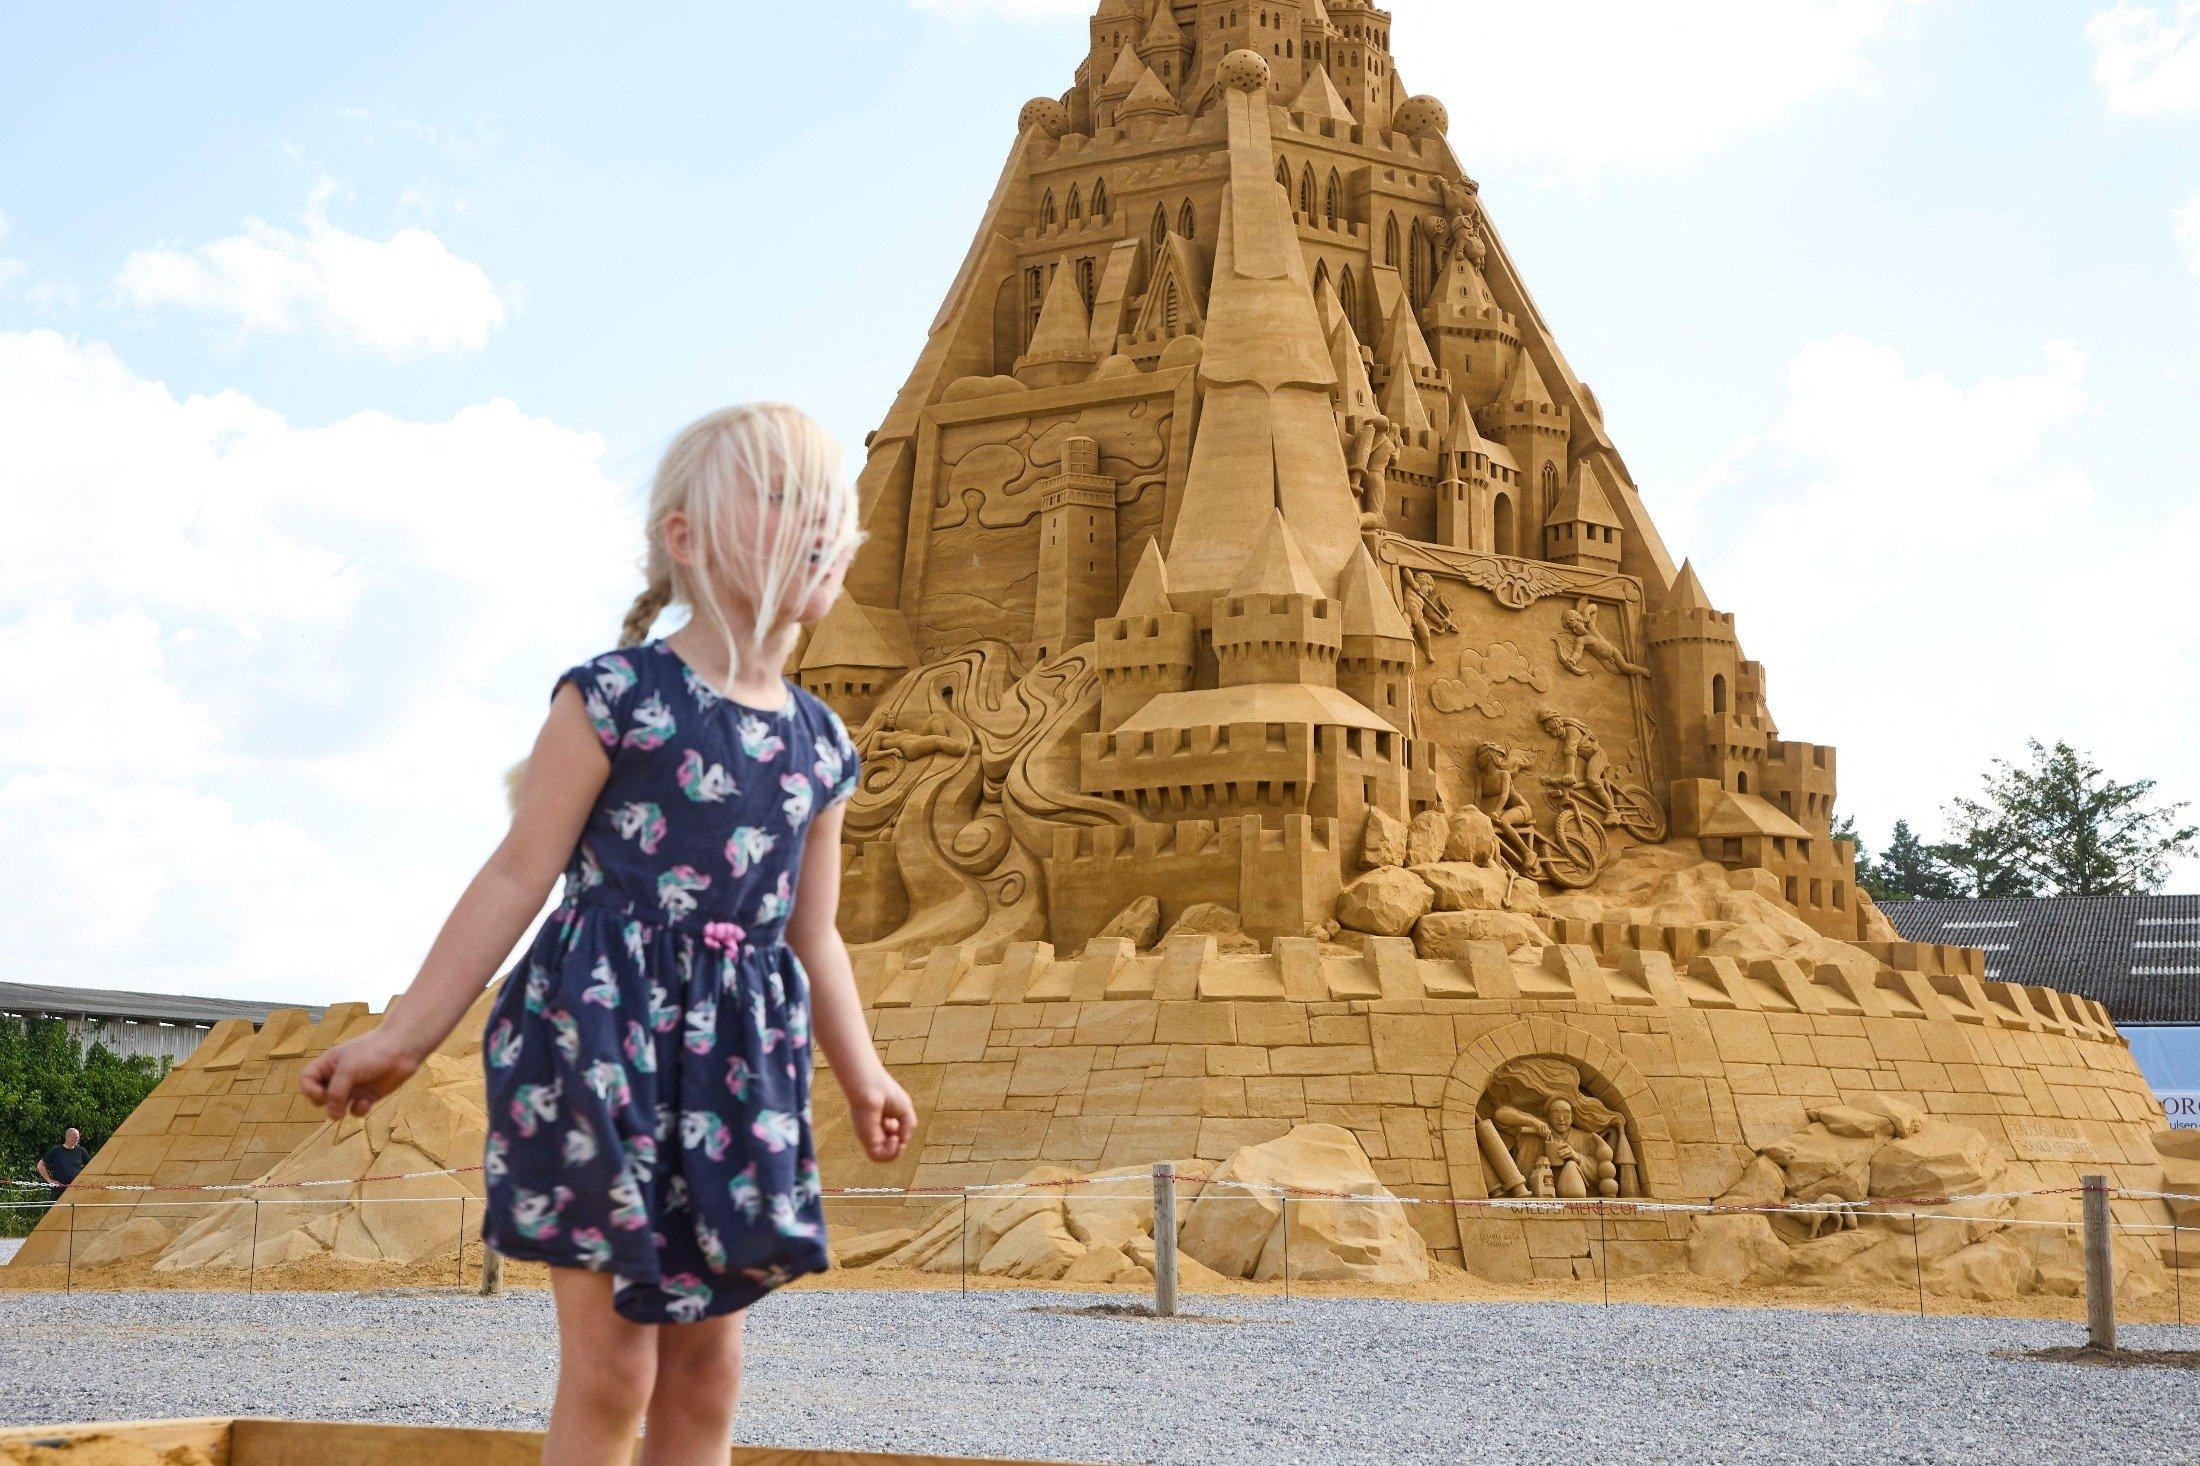 A girl plays in front of the world's tallest sand sculpture, under construction in Blokhus, Denmark, July 7, 2021. (AFP Photo)